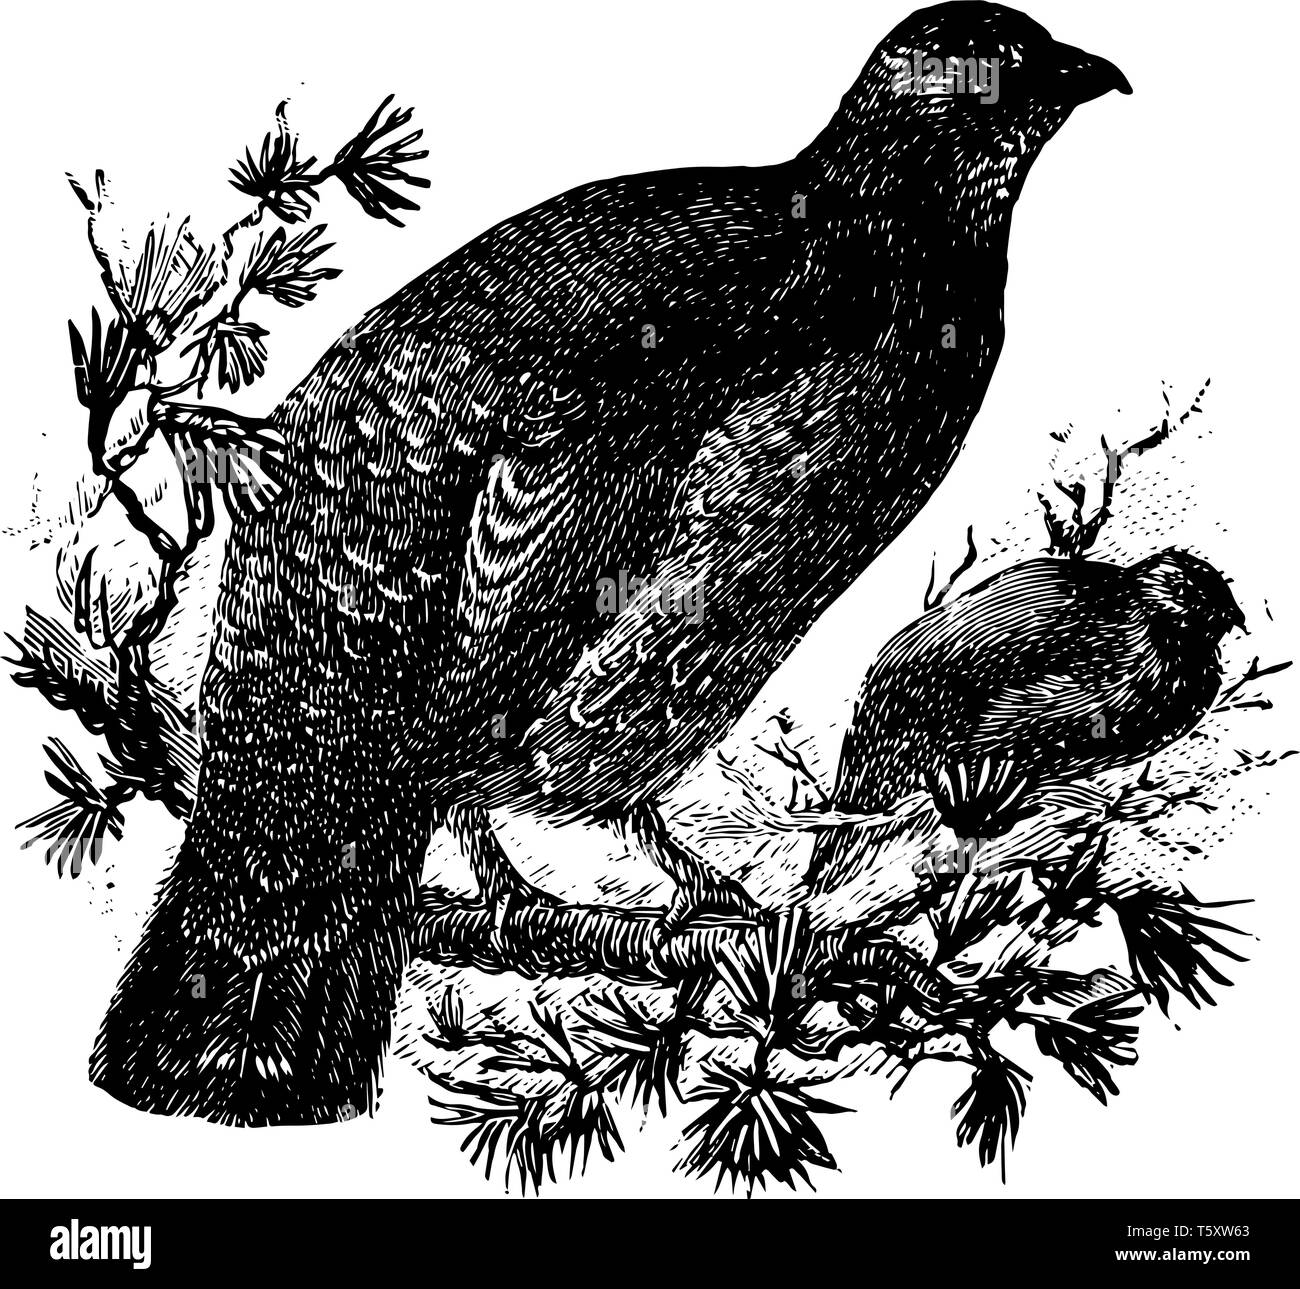 Dusky Grouse is a bird in the Phasianidae family of pheasants and partridges, vintage line drawing or engraving illustration. - Stock Image